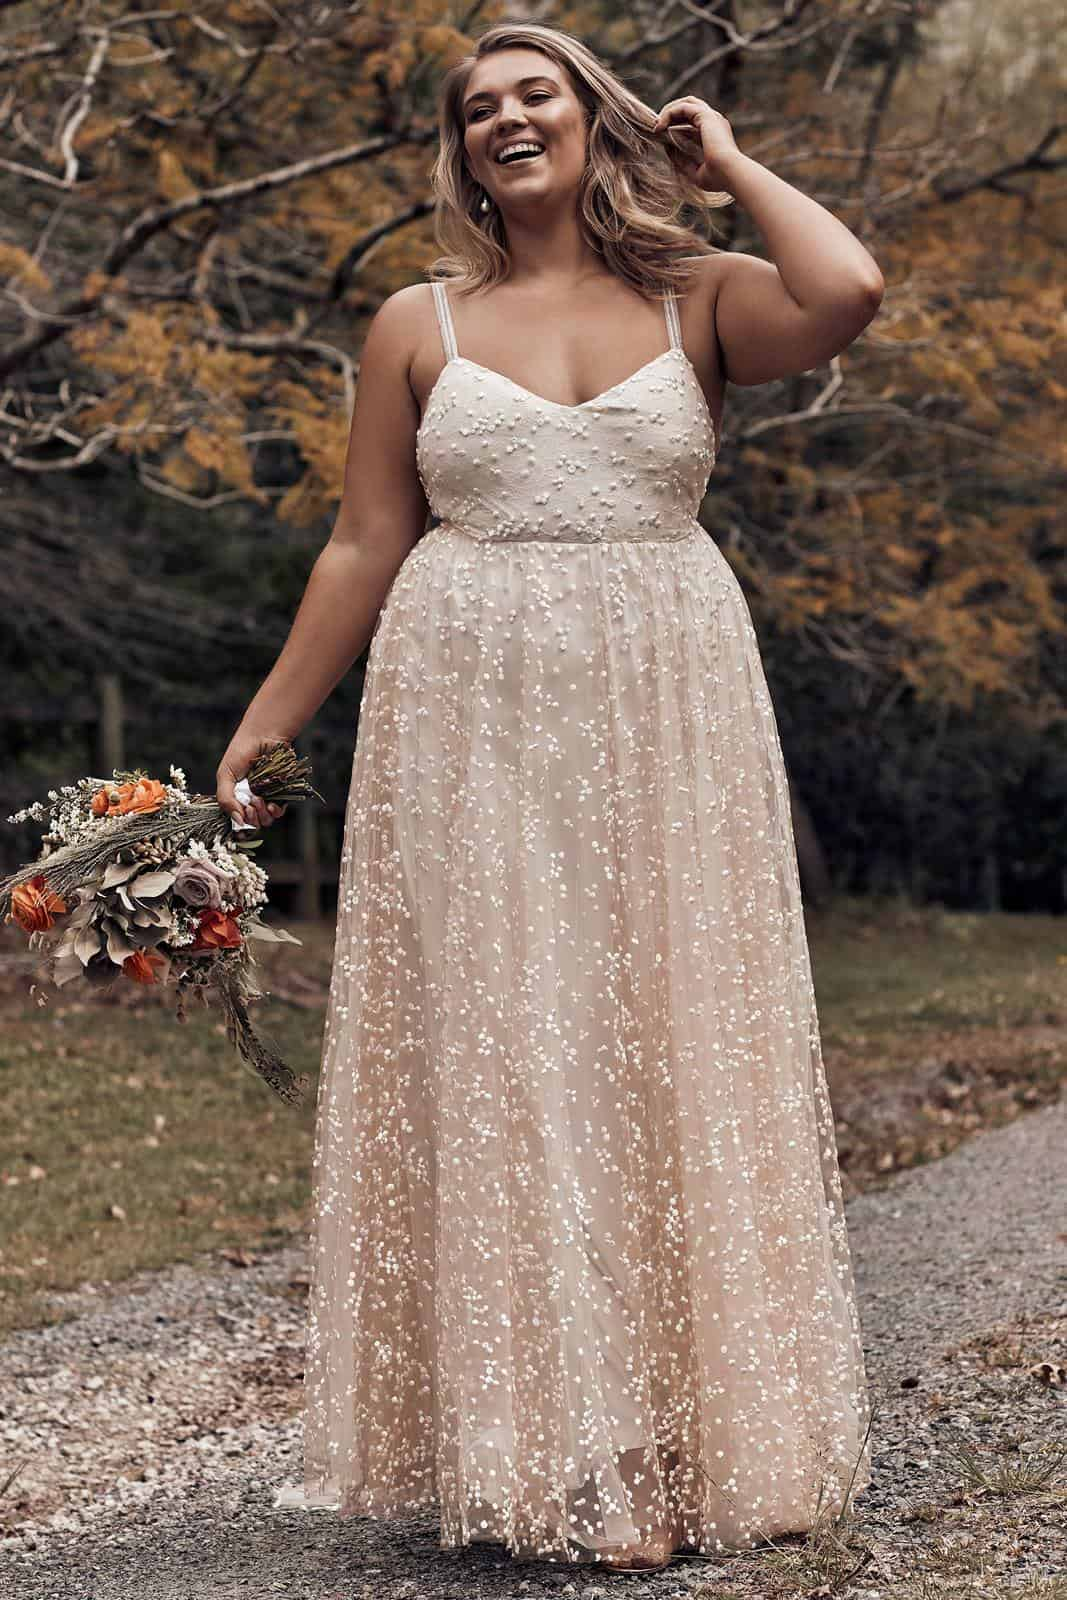 Elopement Wedding Dress for Curvy Brides Blush Embroided Beaded Dress Intimate Wedding Dress Romantic Grace Loves Lace Menha